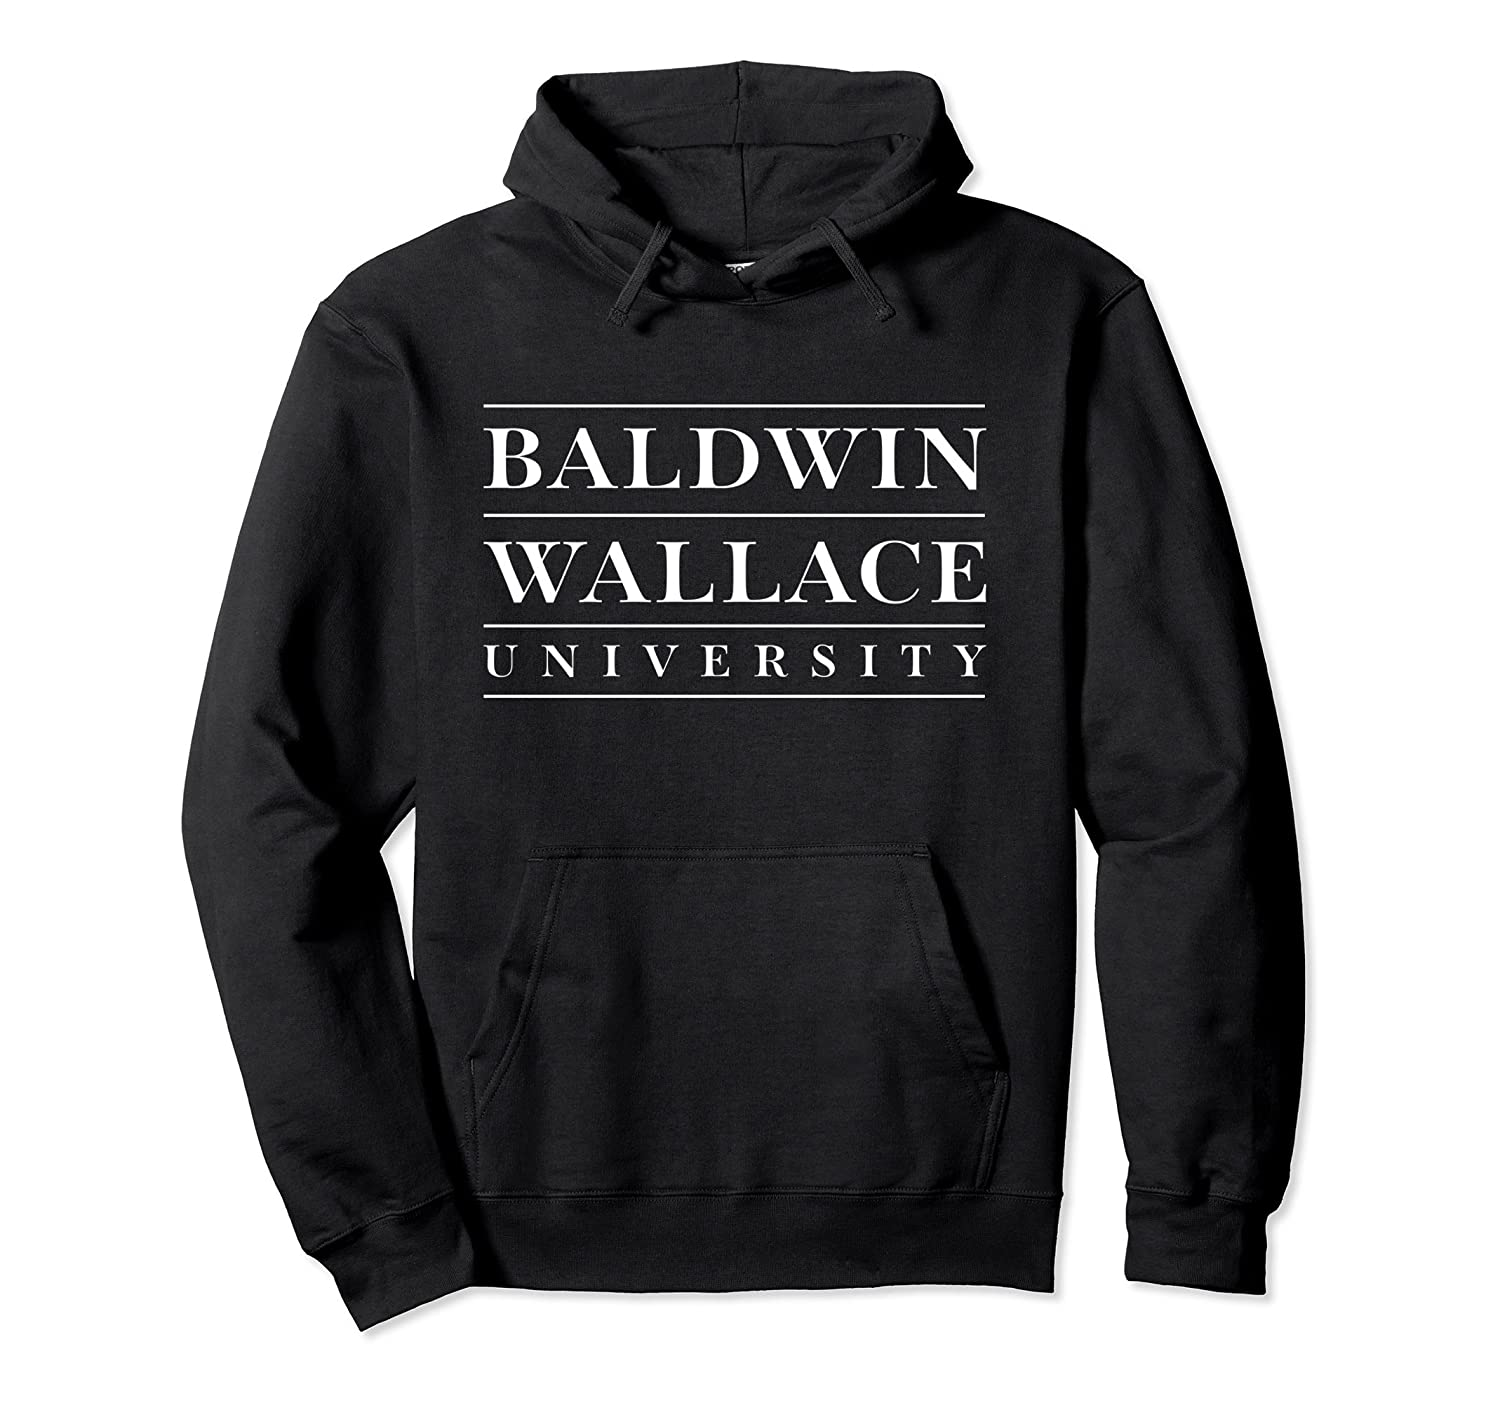 Baldwin Wallace University Yellow Jackets Hoodie BW-01-TH